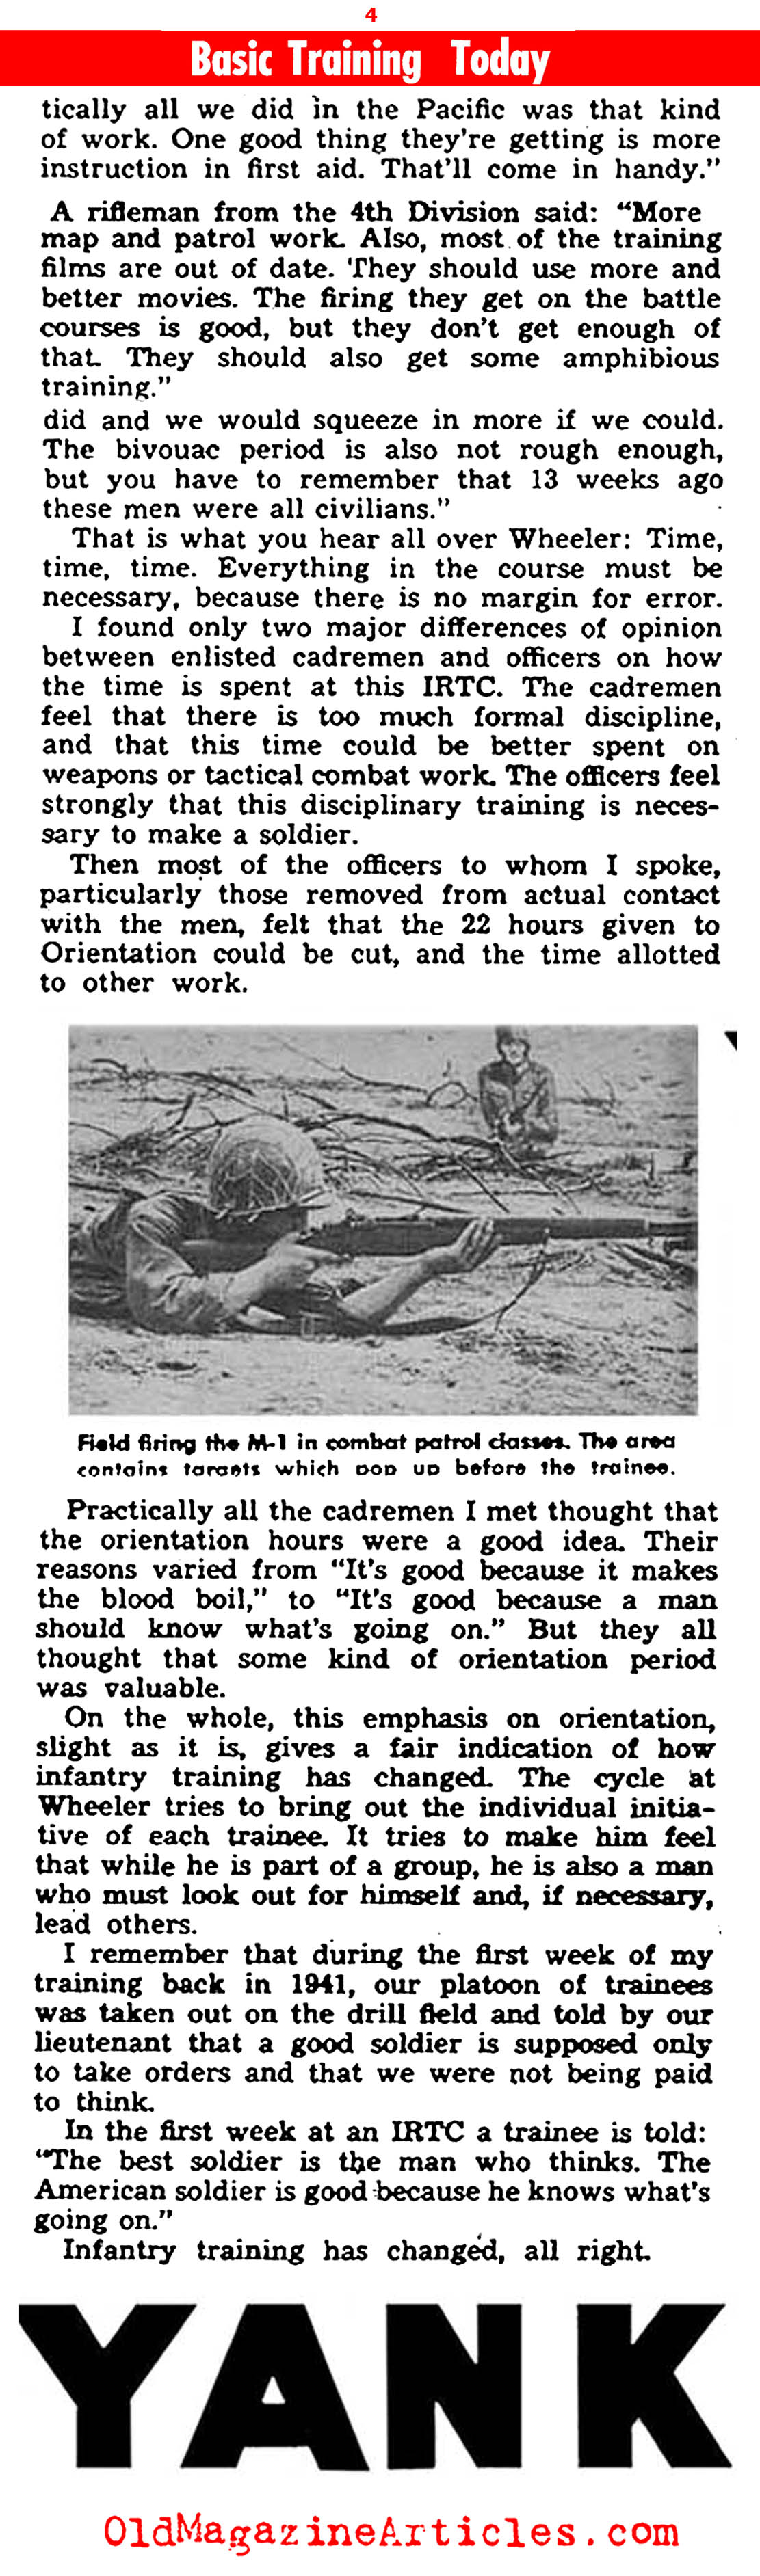 Late War Combat Training: Camp Wheeler (Yank Magazine, 1945)